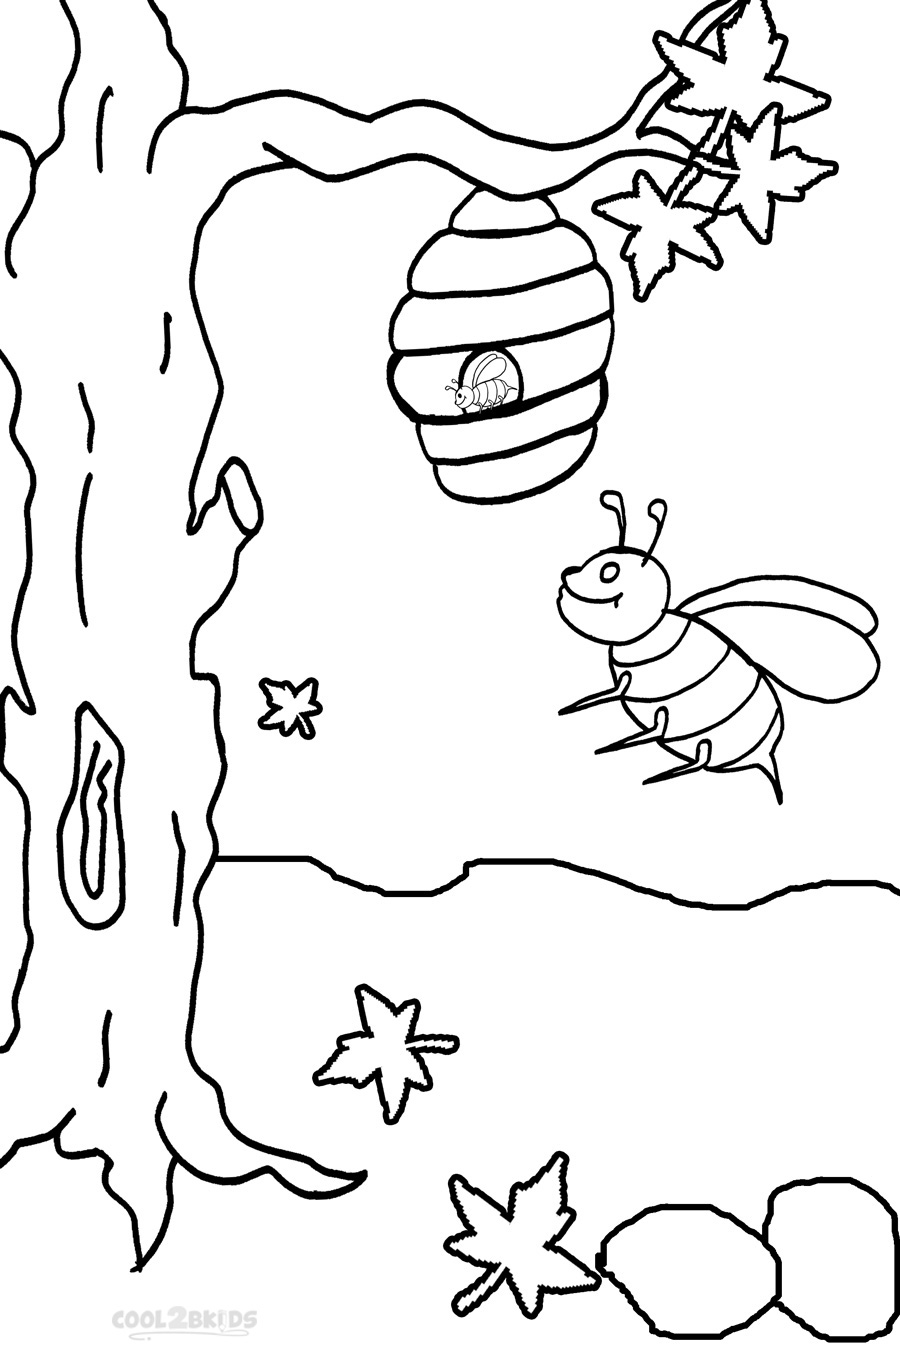 Printable Bumble Bee Coloring Pages For Kids | Cool2bKids